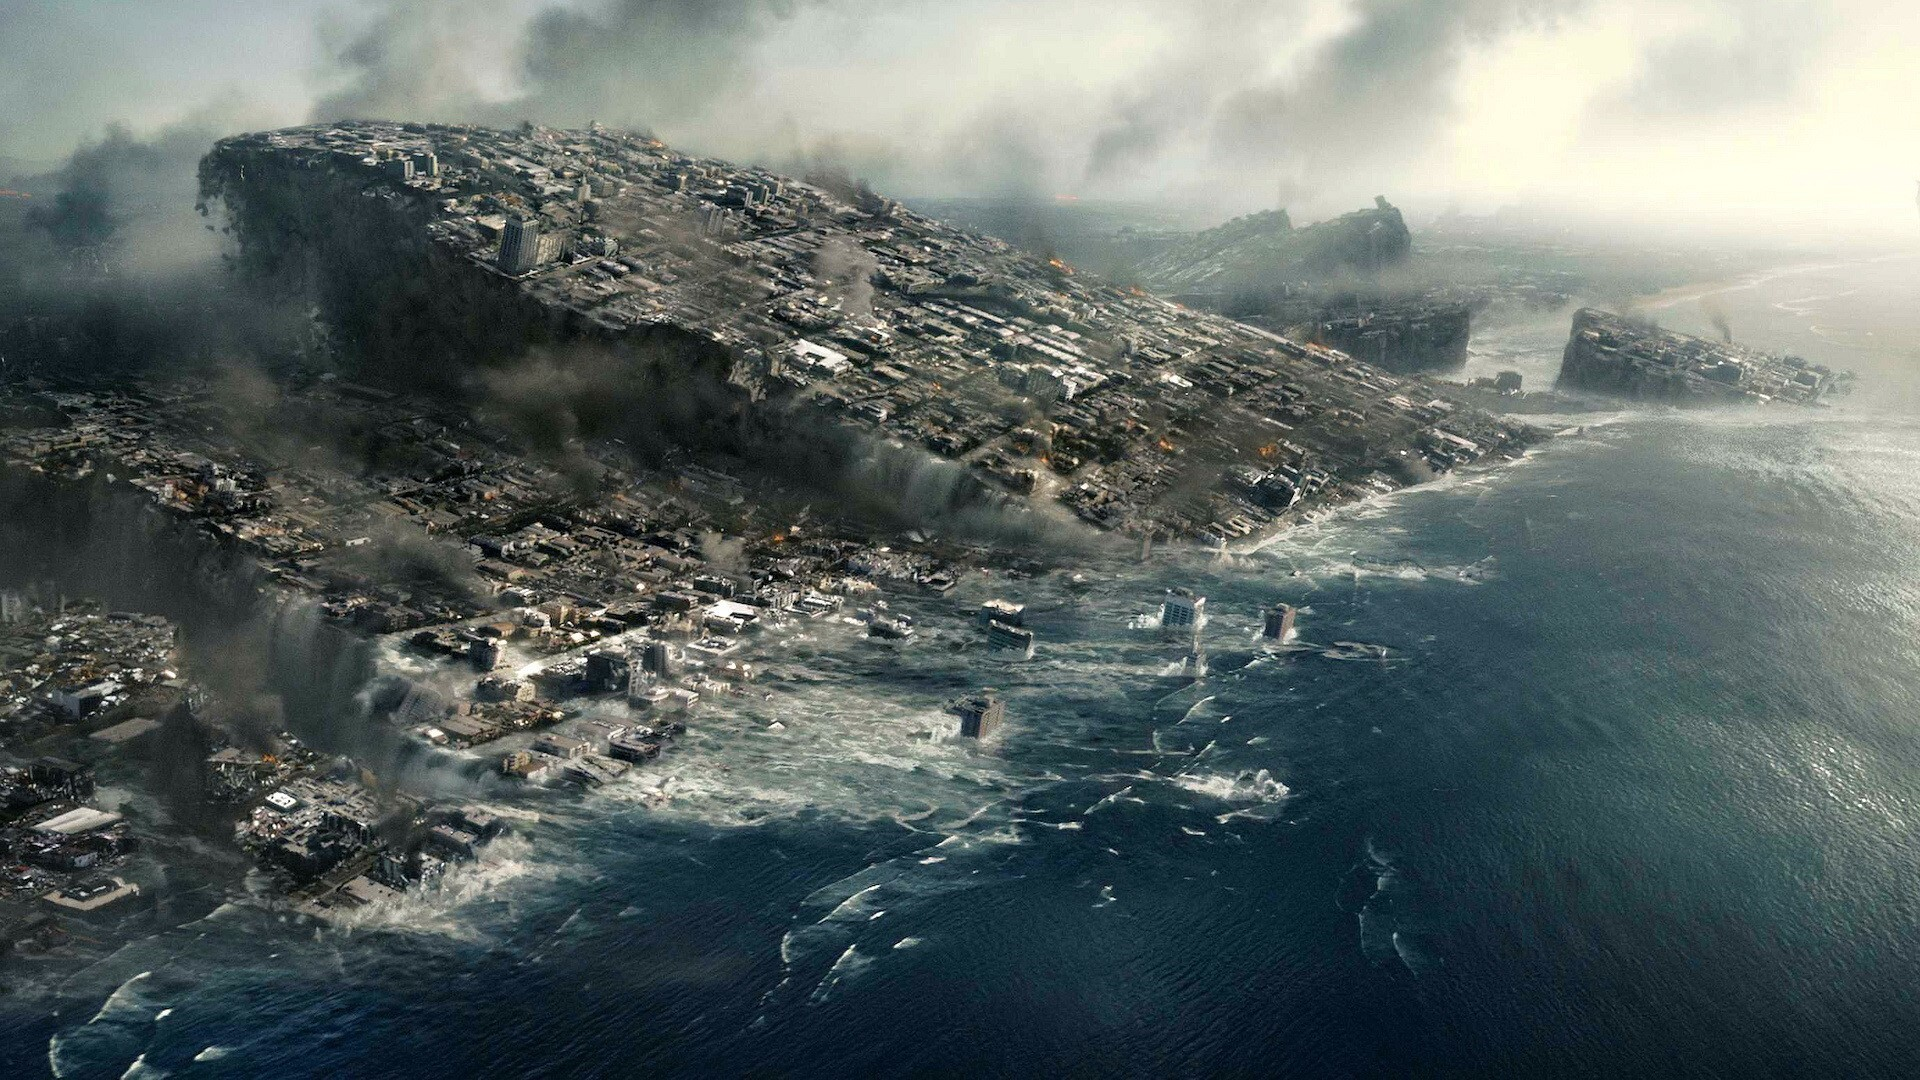 2012 end of the world movie wallpaper hd wallpapers voltagebd Images